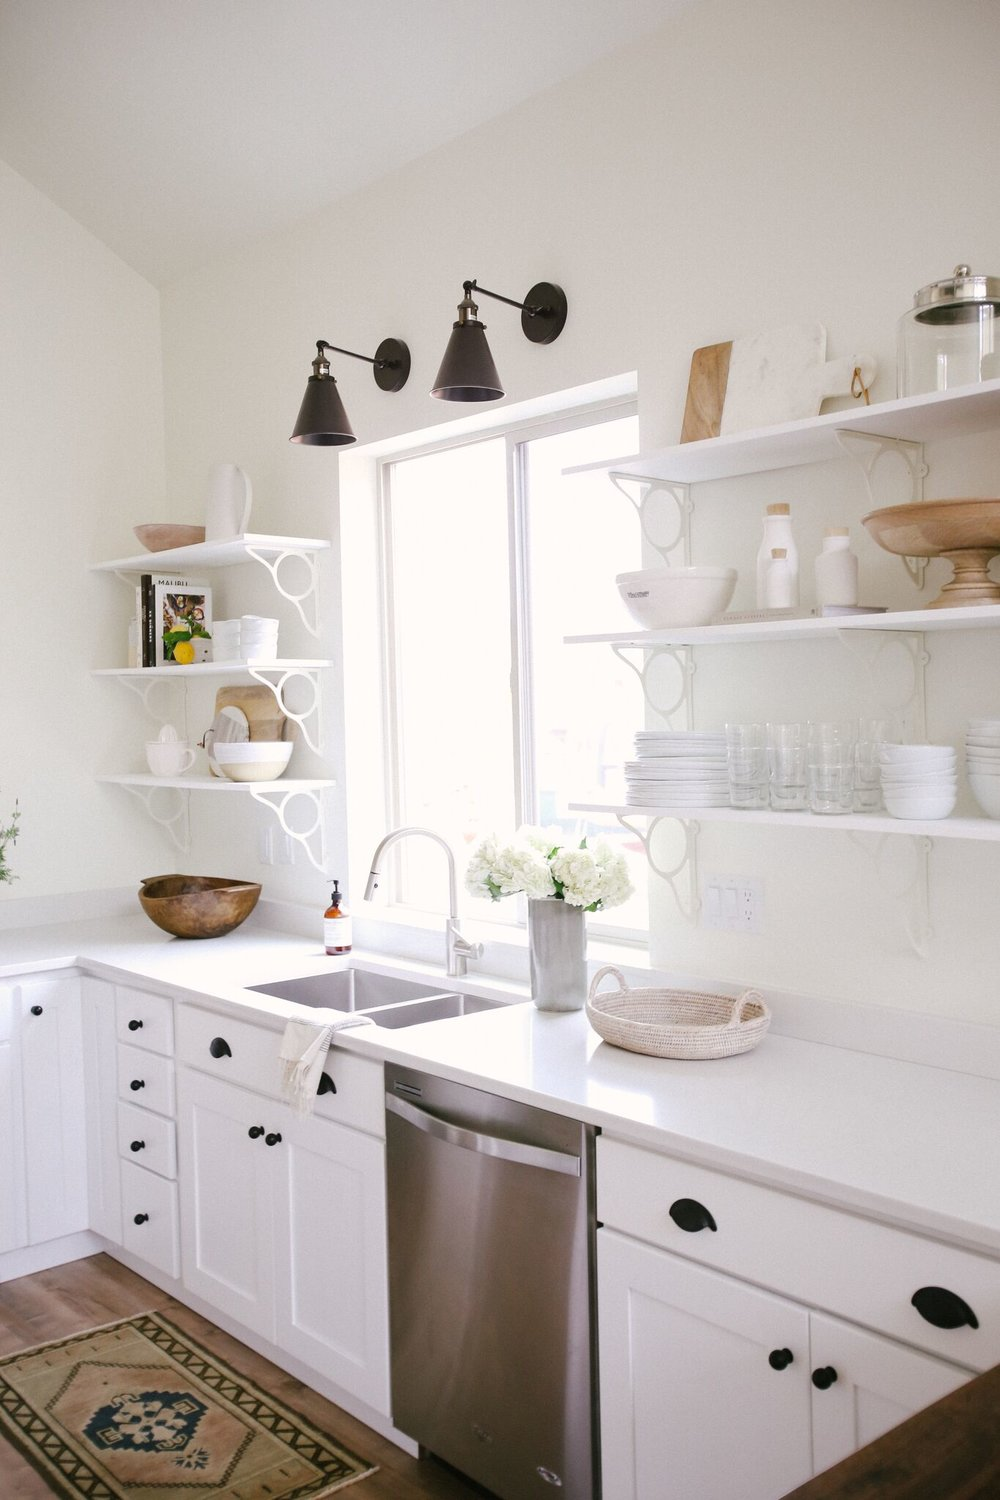 How To Style A Minimalist Kitchen Studio Mcgee